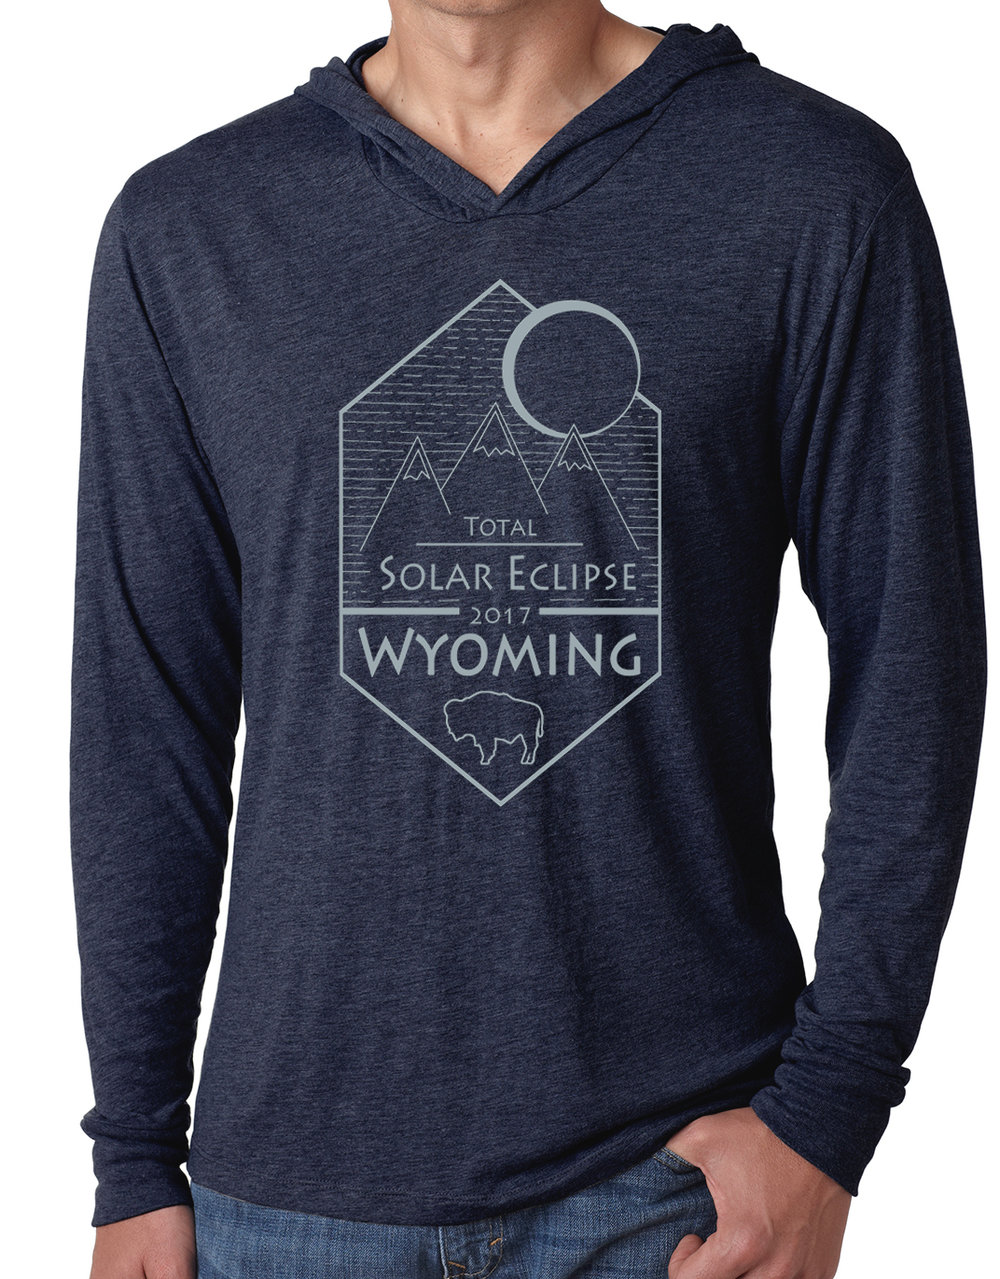 Wyoming Eclipse Shirt Limited Release 105 Degrees West